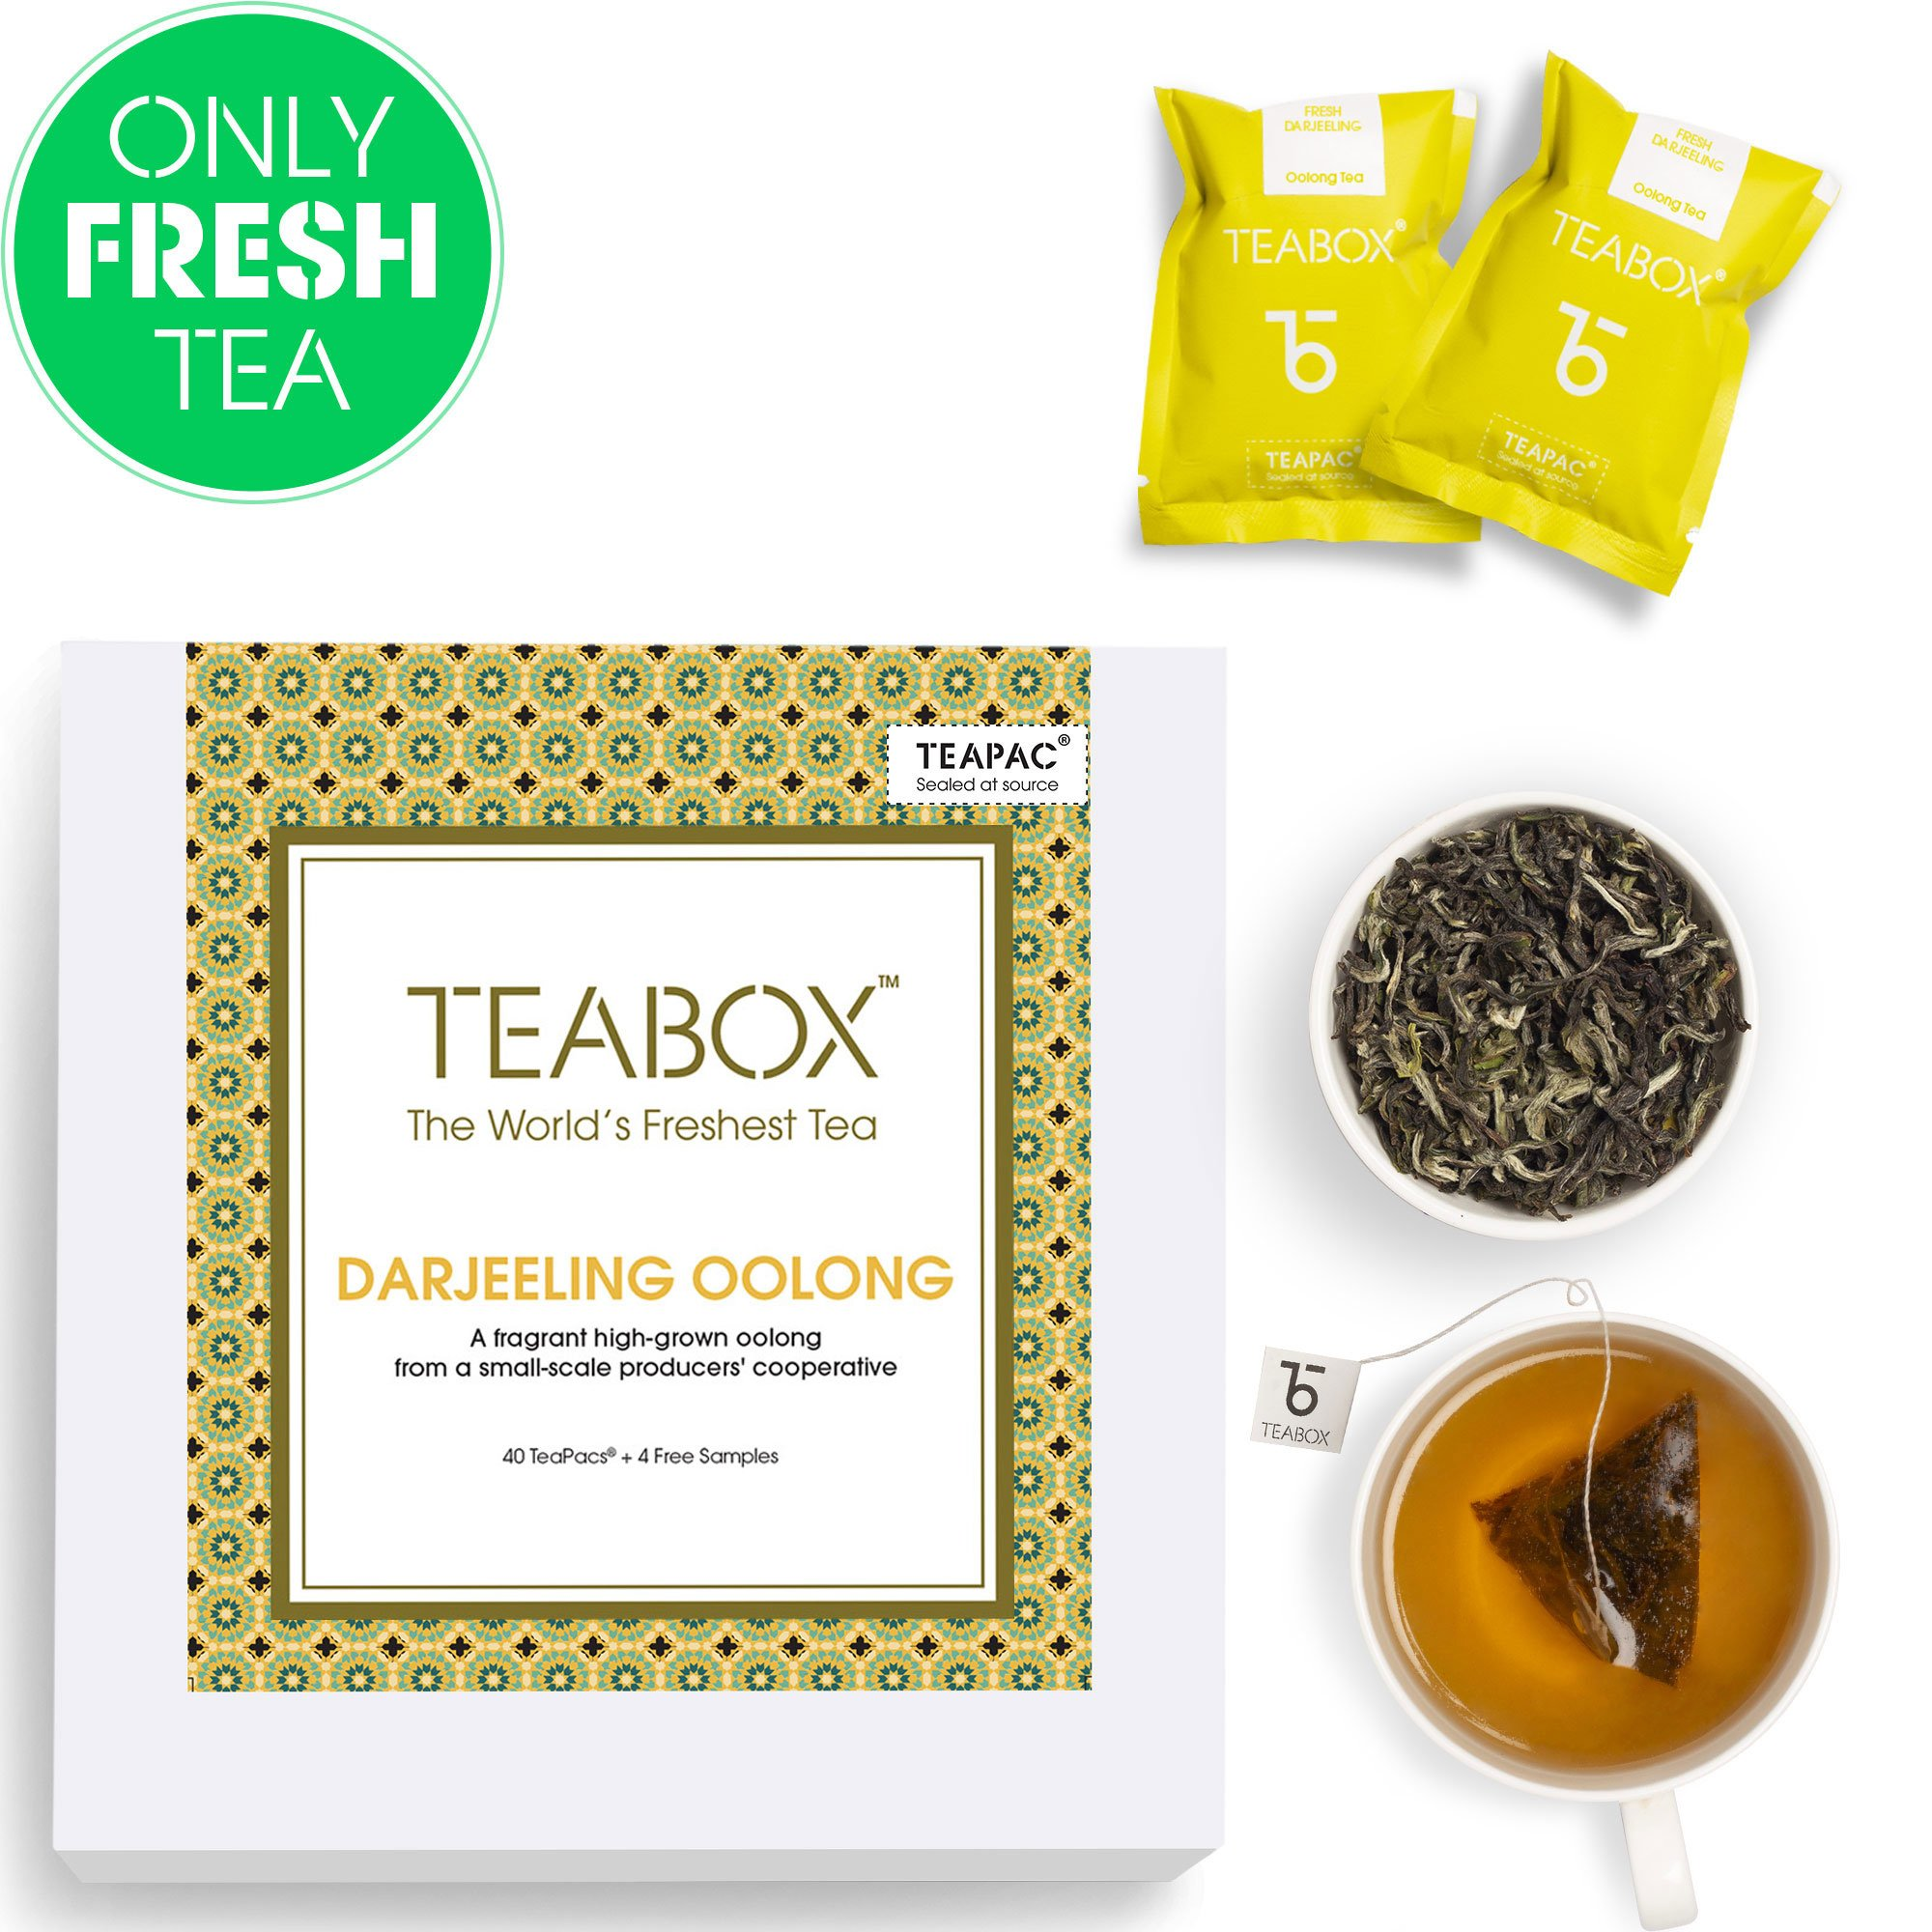 Teabox Darjeeling Oolong Tea, 44 Teabags (4 Free Exotic Samples Included)  100% Natural Darjeeling CTM Oolong Tea   Whole Leaf Weight Loss Oolong Tea   Sealed-at-Source Freshness from India